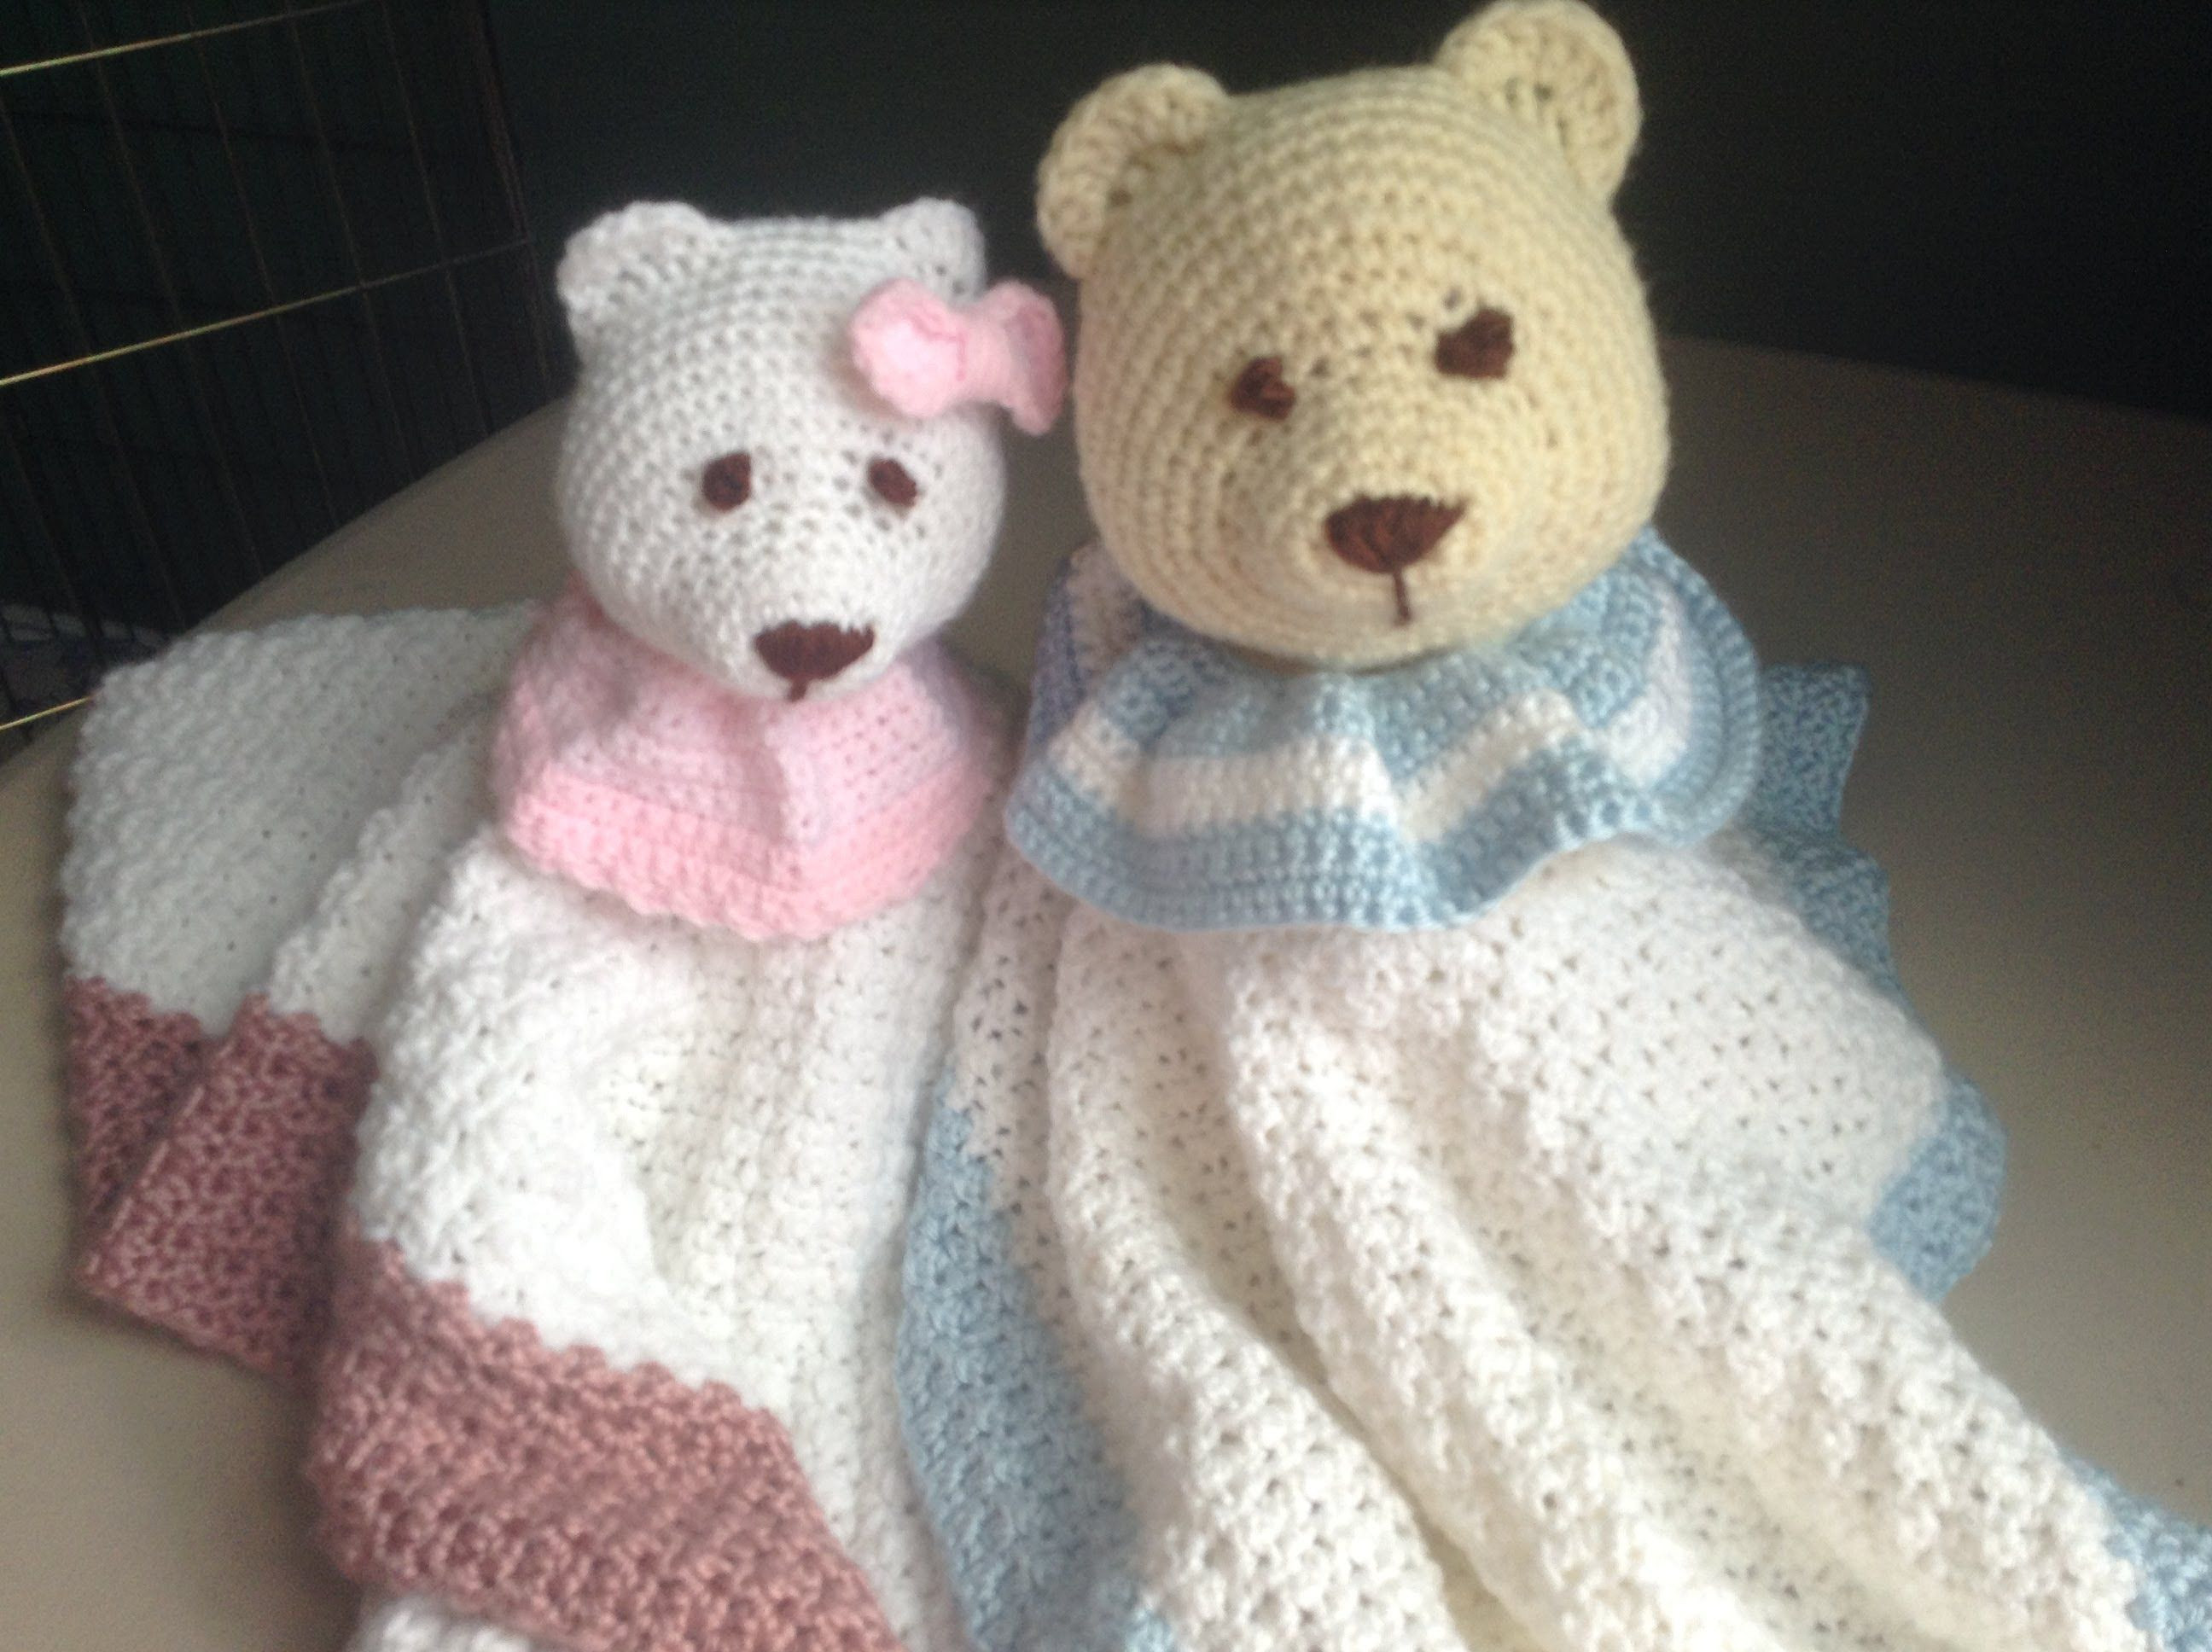 Crochet Animal Blankets Unique How to Crochet A Baby Blanket Stuffed Animal Lovey Of Marvelous 39 Photos Crochet Animal Blankets